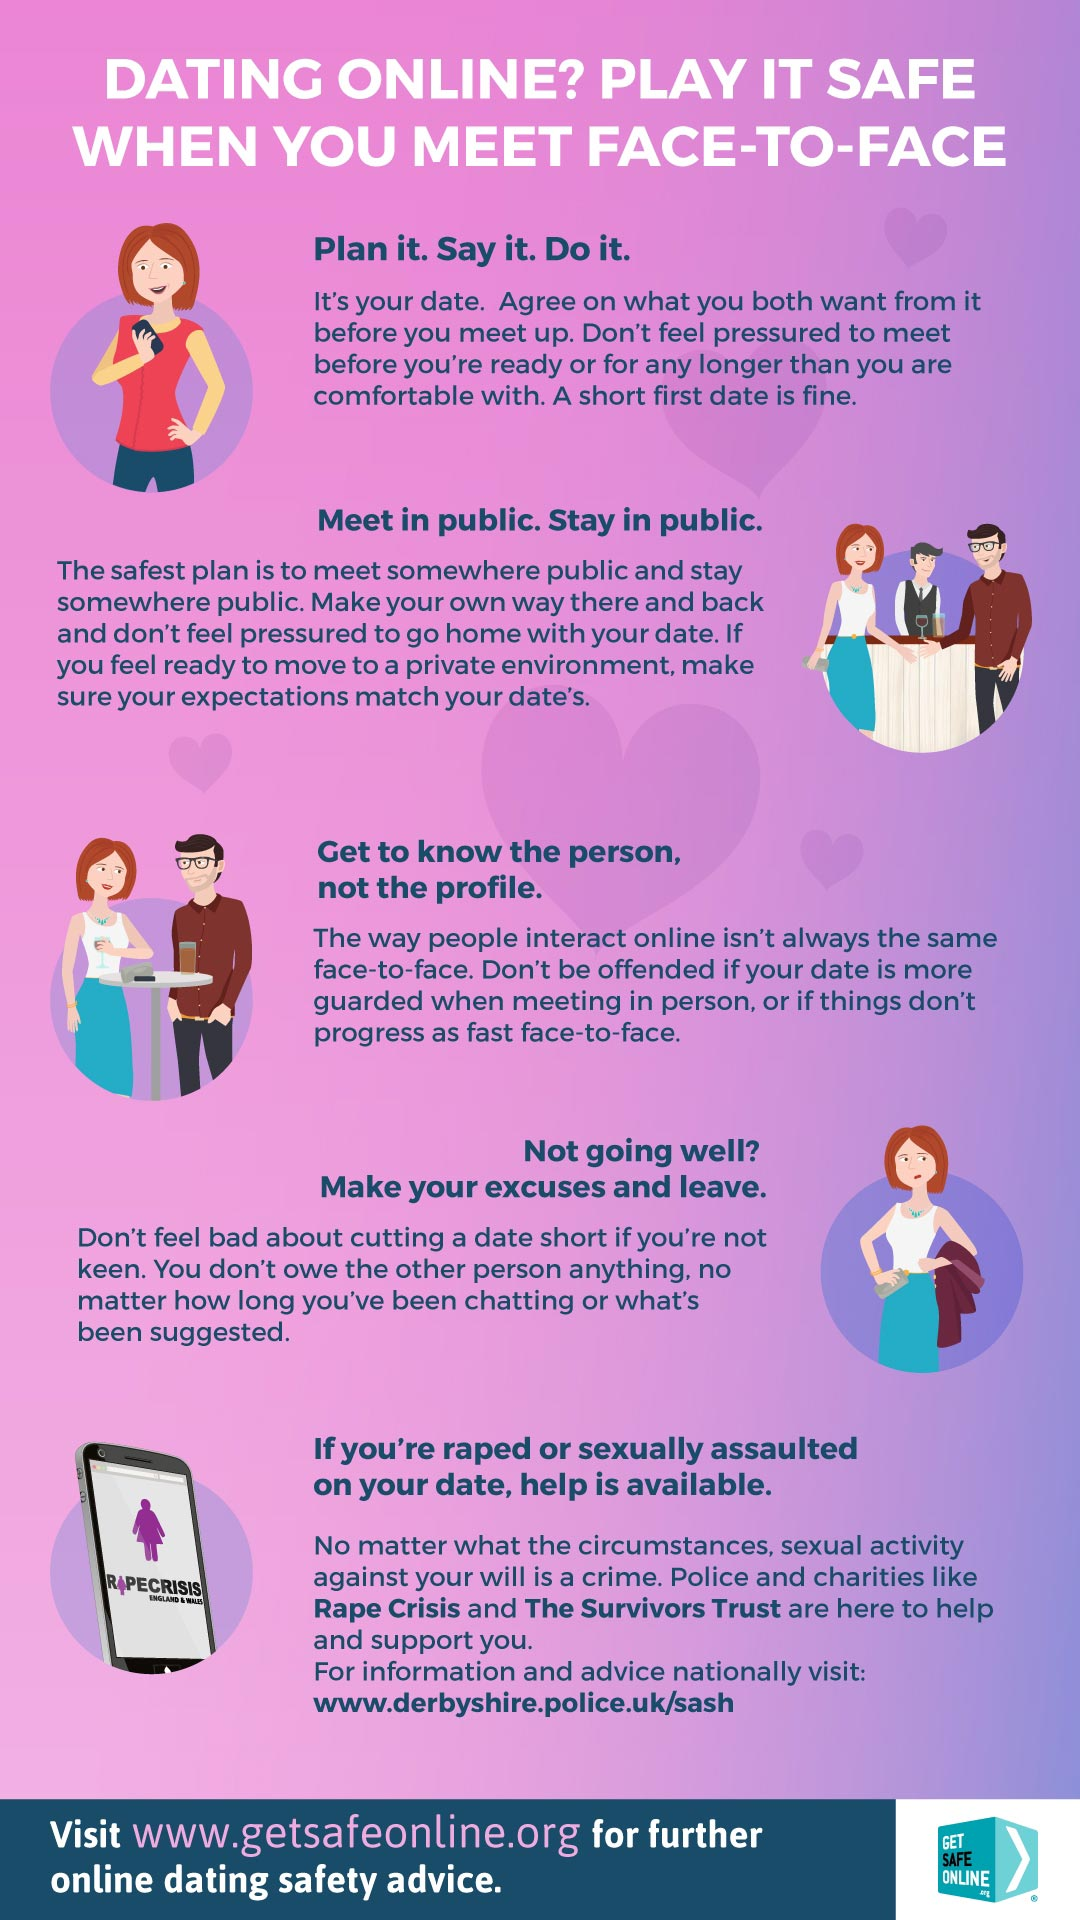 todays date online dating tips